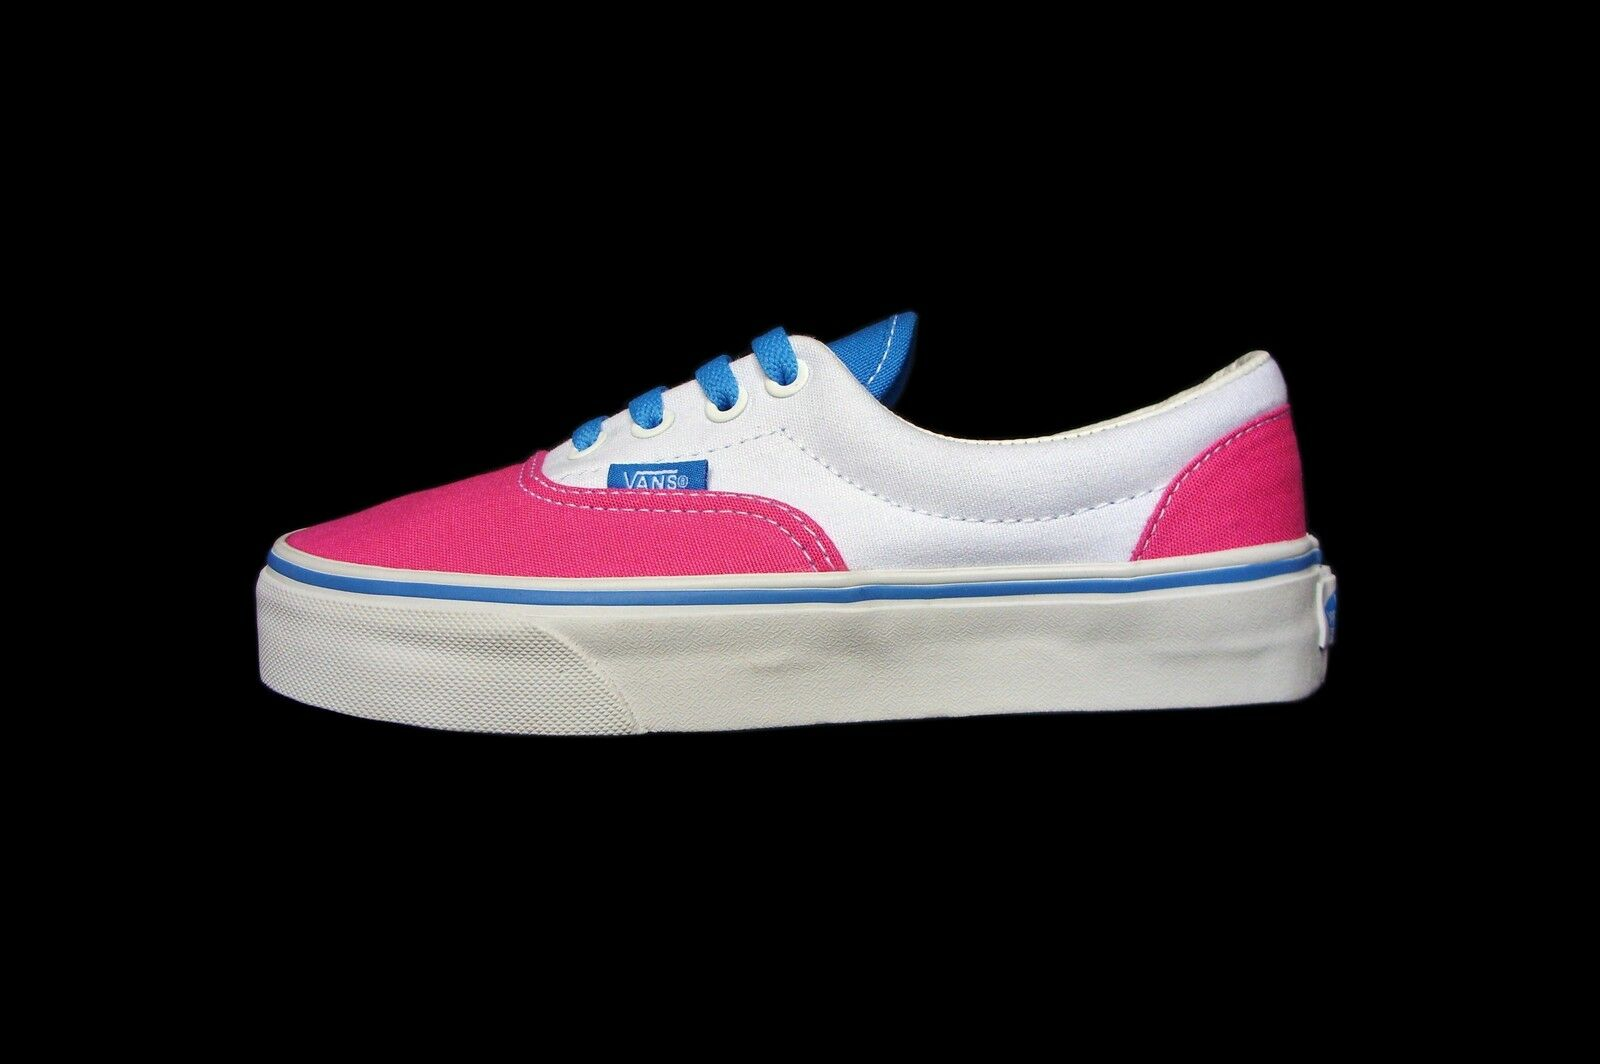 VANS ERA TRI TONE TRAINERS  PUMPS PLIMSOLLS SIZE UNISEX MENS WOMENS UK SIZE PLIMSOLLS 8.5 - 9 7cd81c